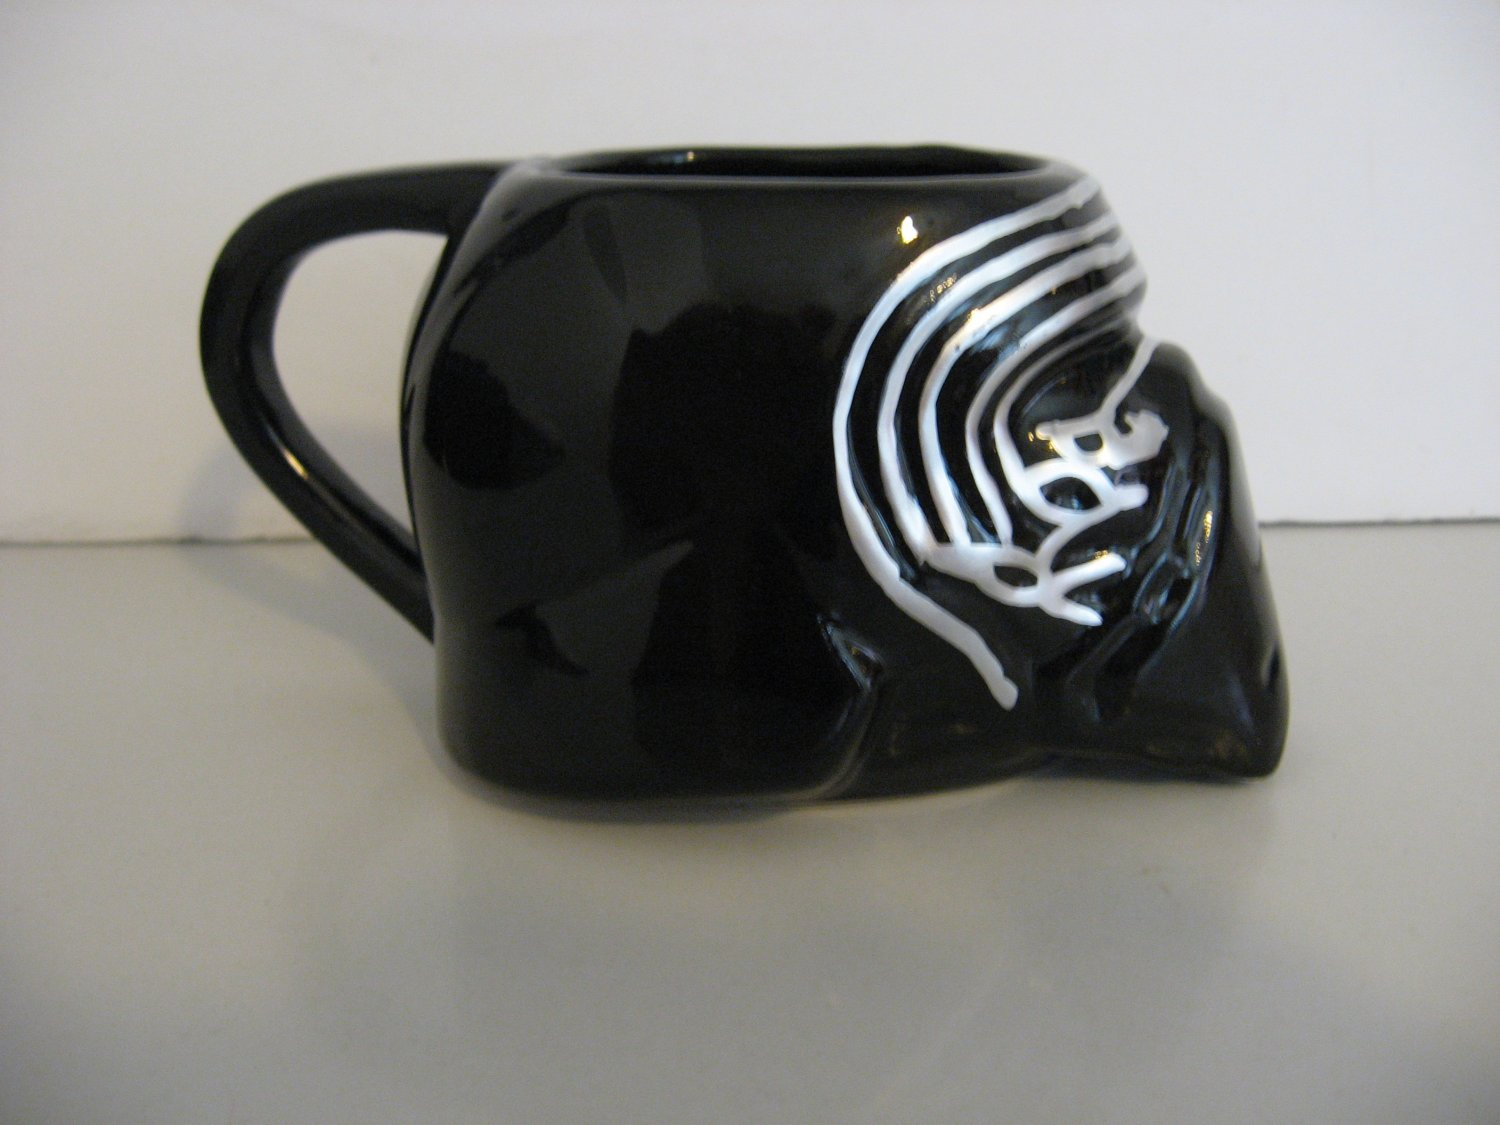 Star Wars Episode VII: The Force Awakens - Kylo Ren 3D Molded Ceramic Mug